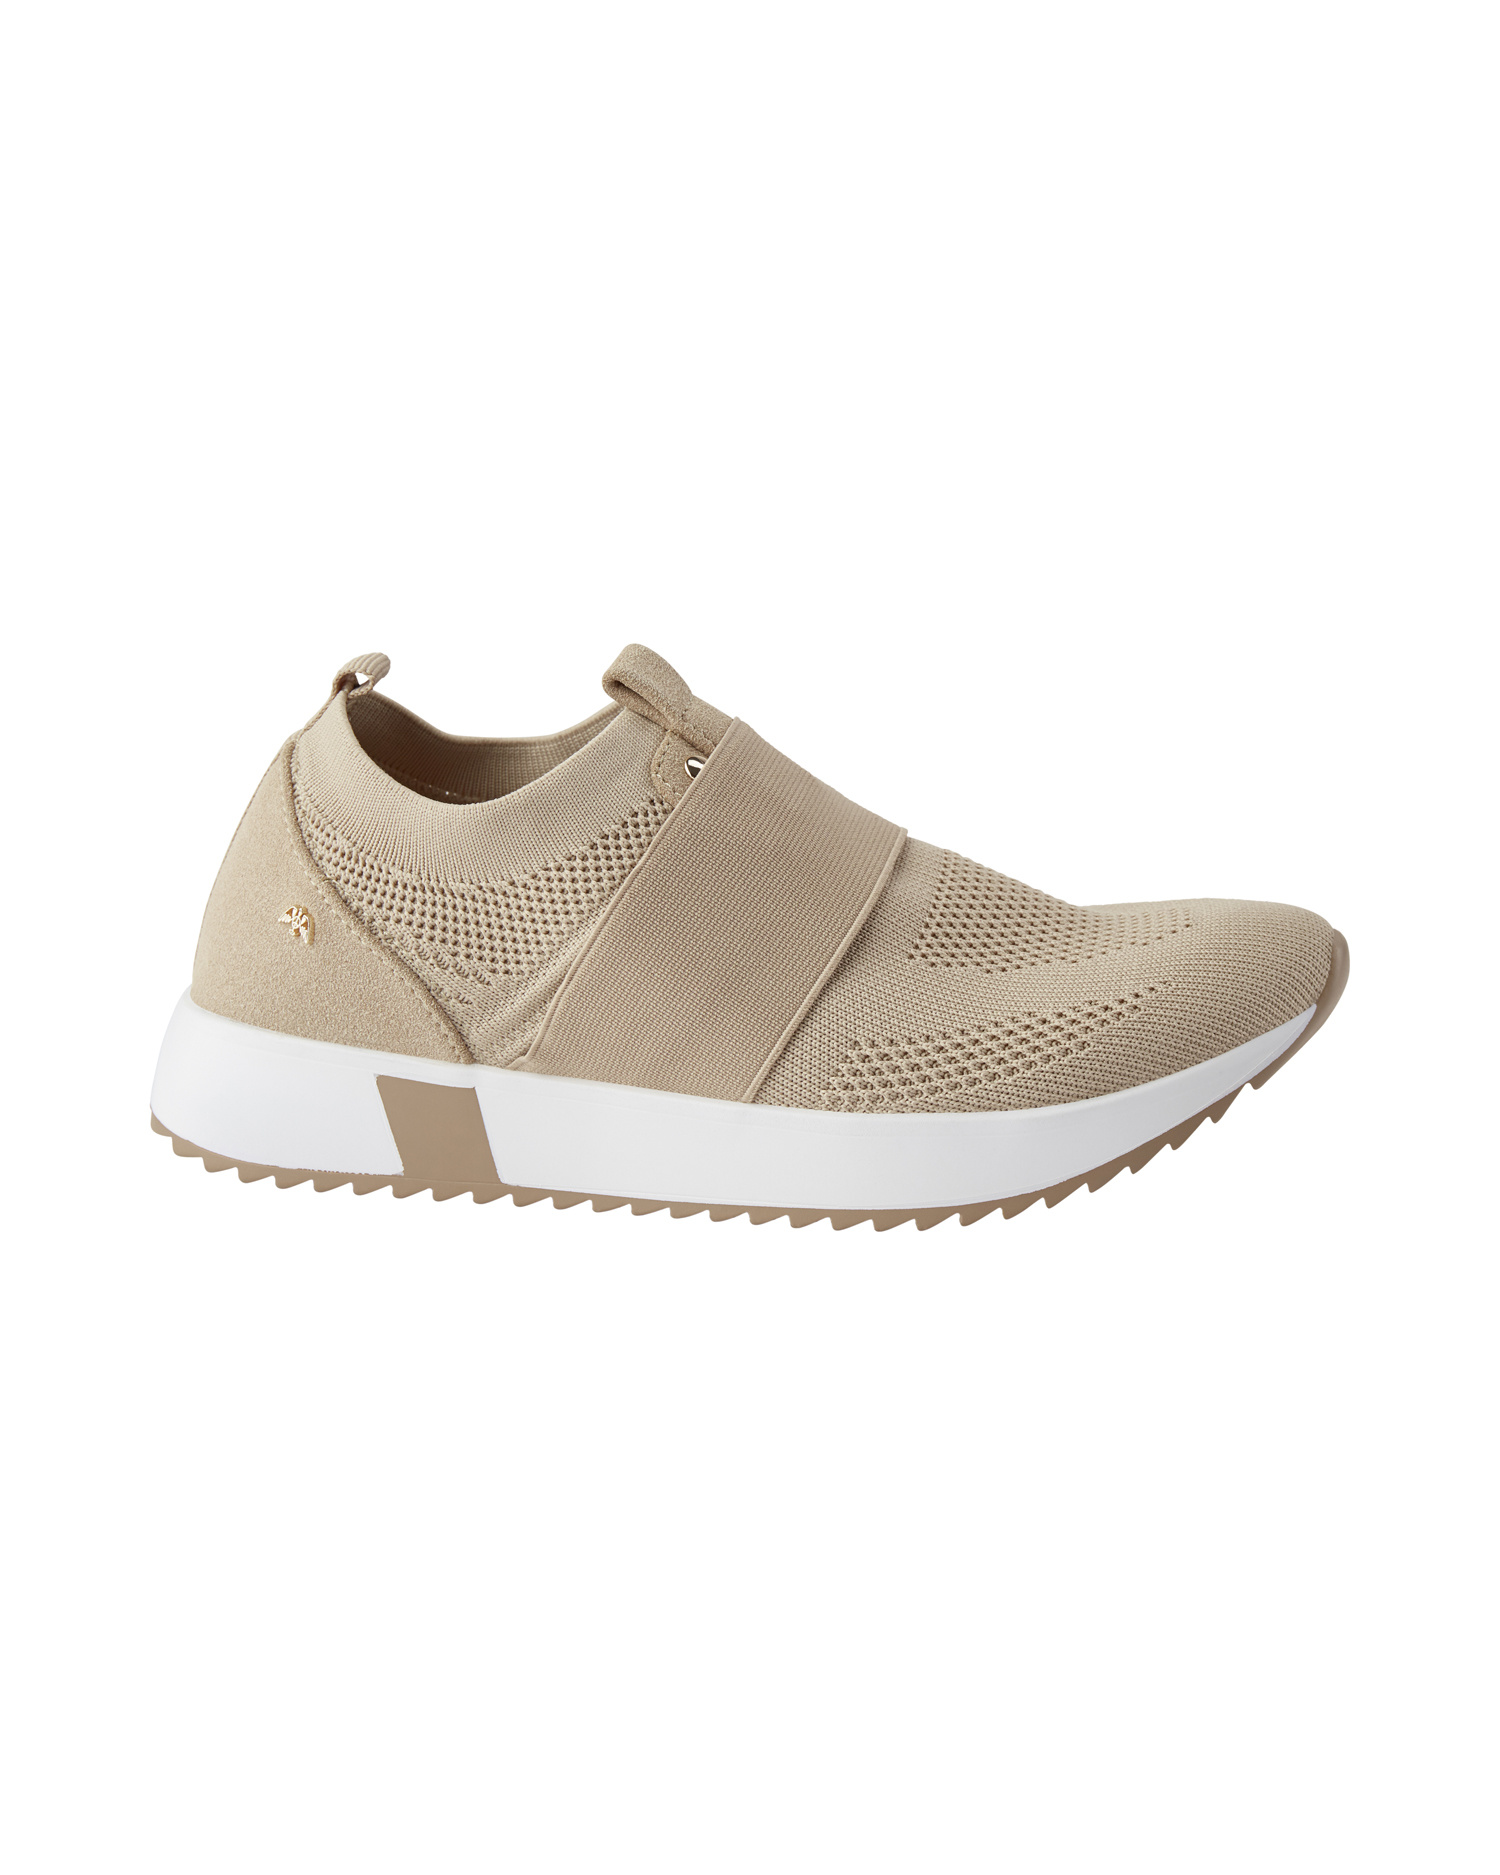 MOS MOSH FLORENCE KNIT SNEAKER